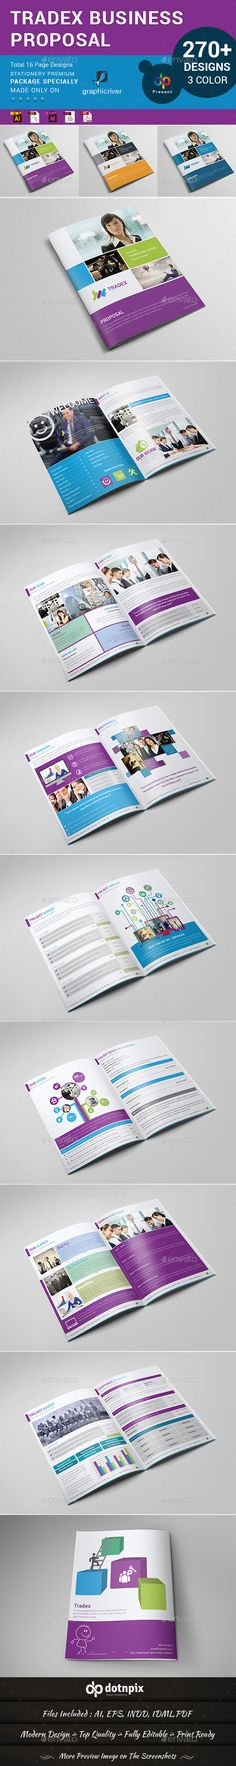 Tradex Business Propsal by dotnpix  Items Worth Checking Out Tradex Business Propsal is a designed for Any types of companies. It is made by simple shapes Although